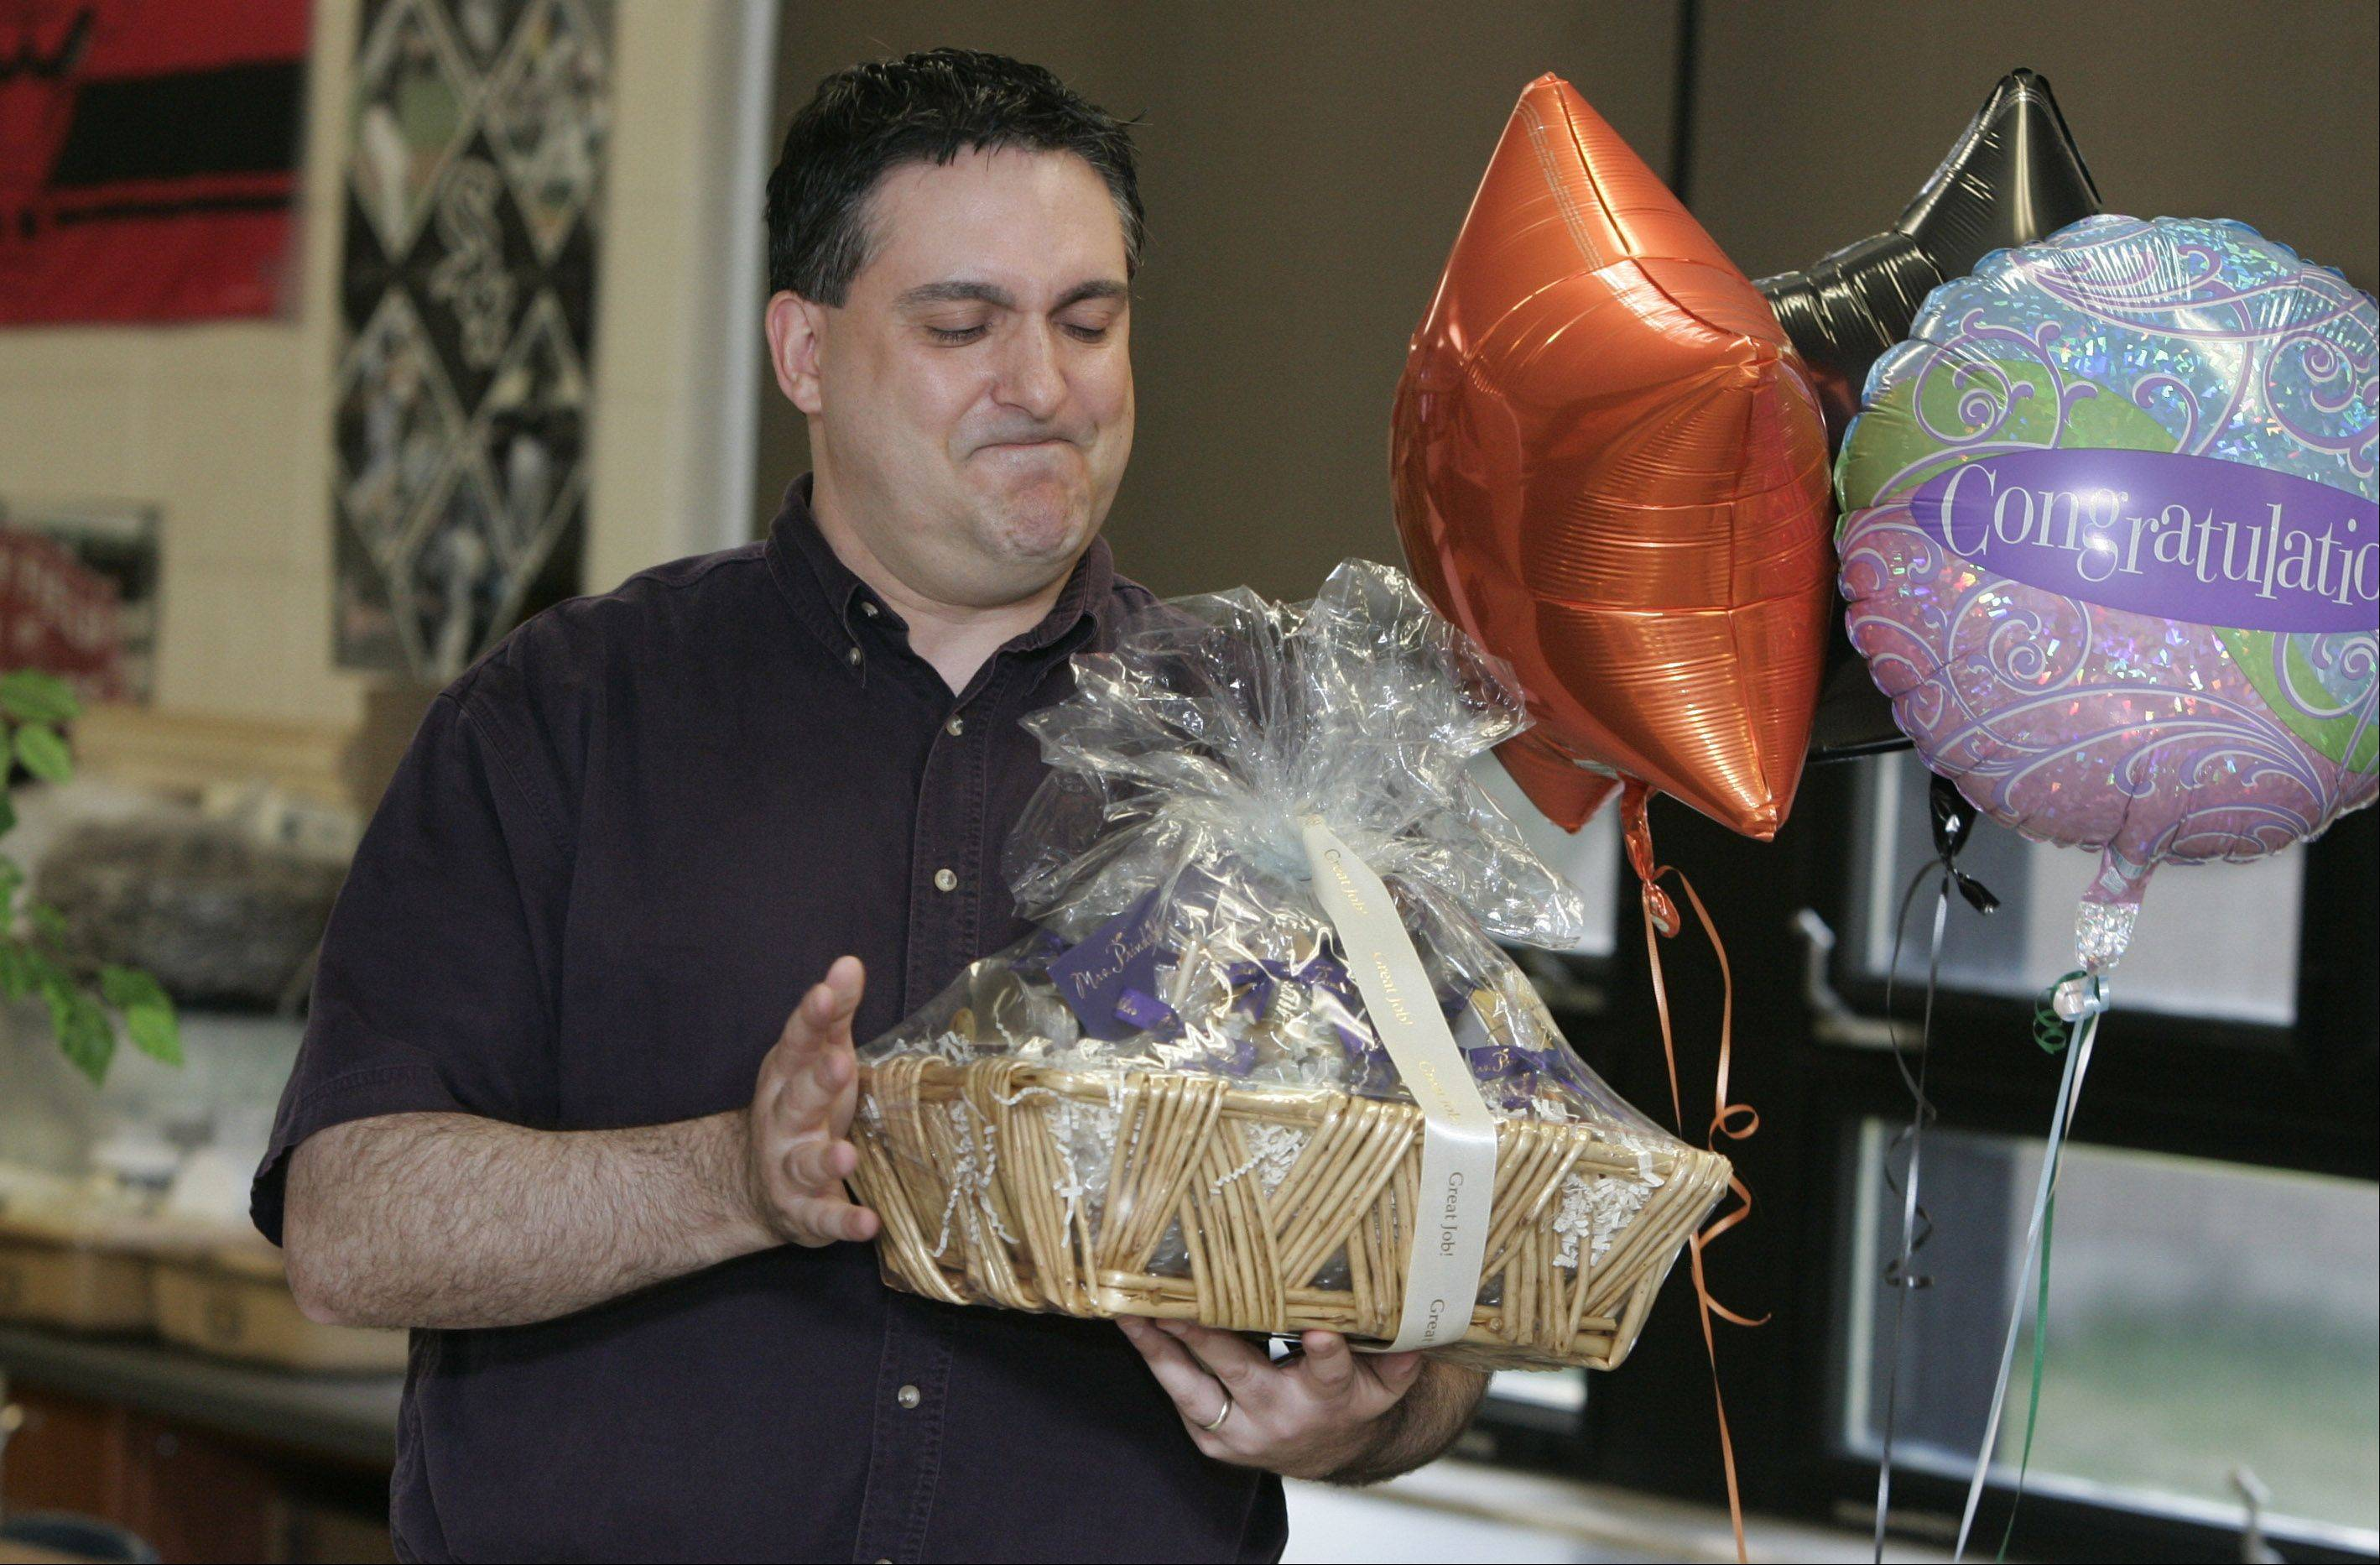 Carl Sandburg Middle School science and technology teacher Michael Sementa was surprised in 2011 when he was awarded the Golden Apple Award at the Mundelein school.